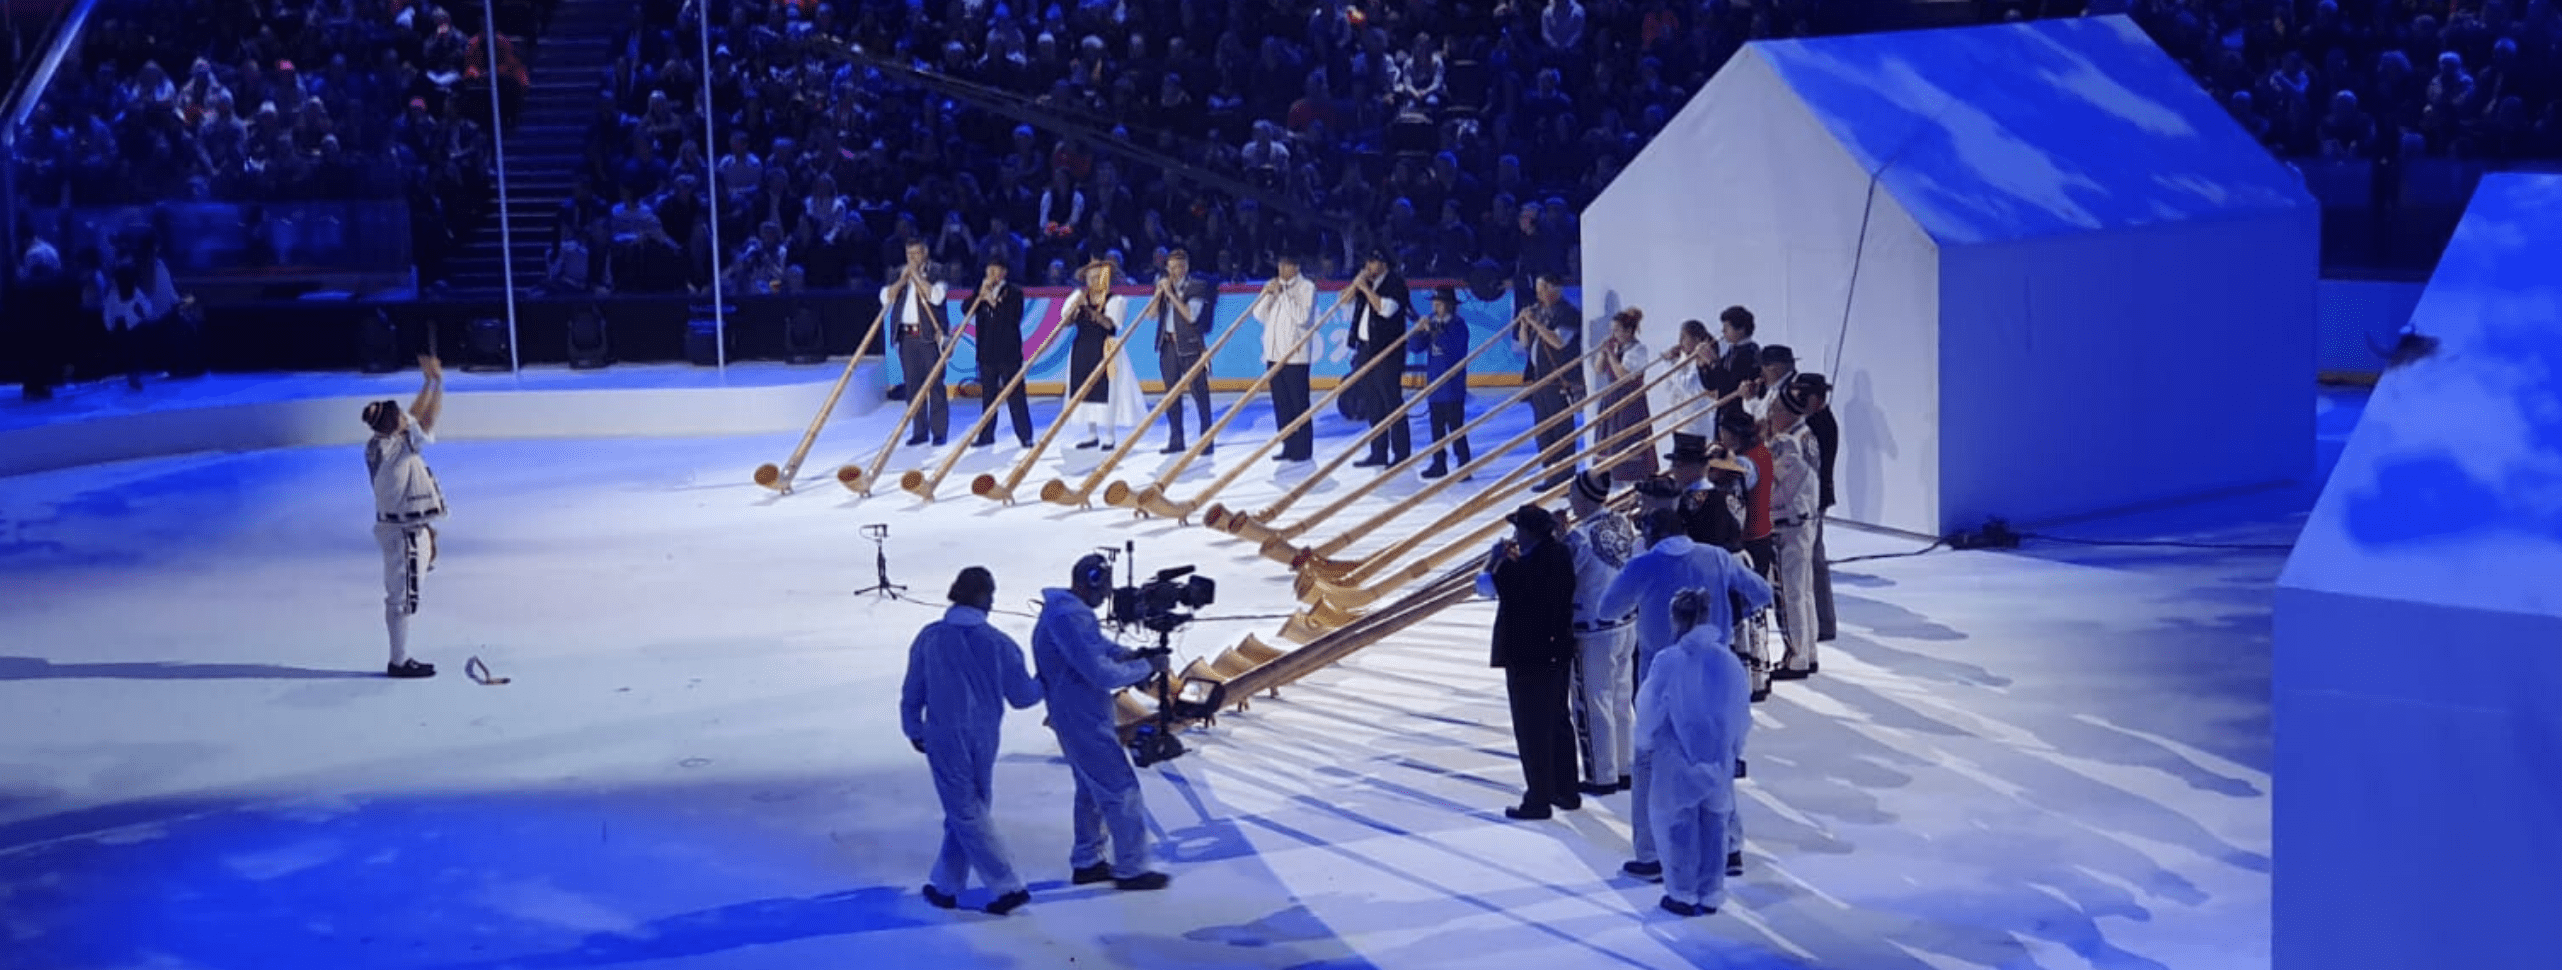 IFSC Attends YOG 2020 Opening Ceremony